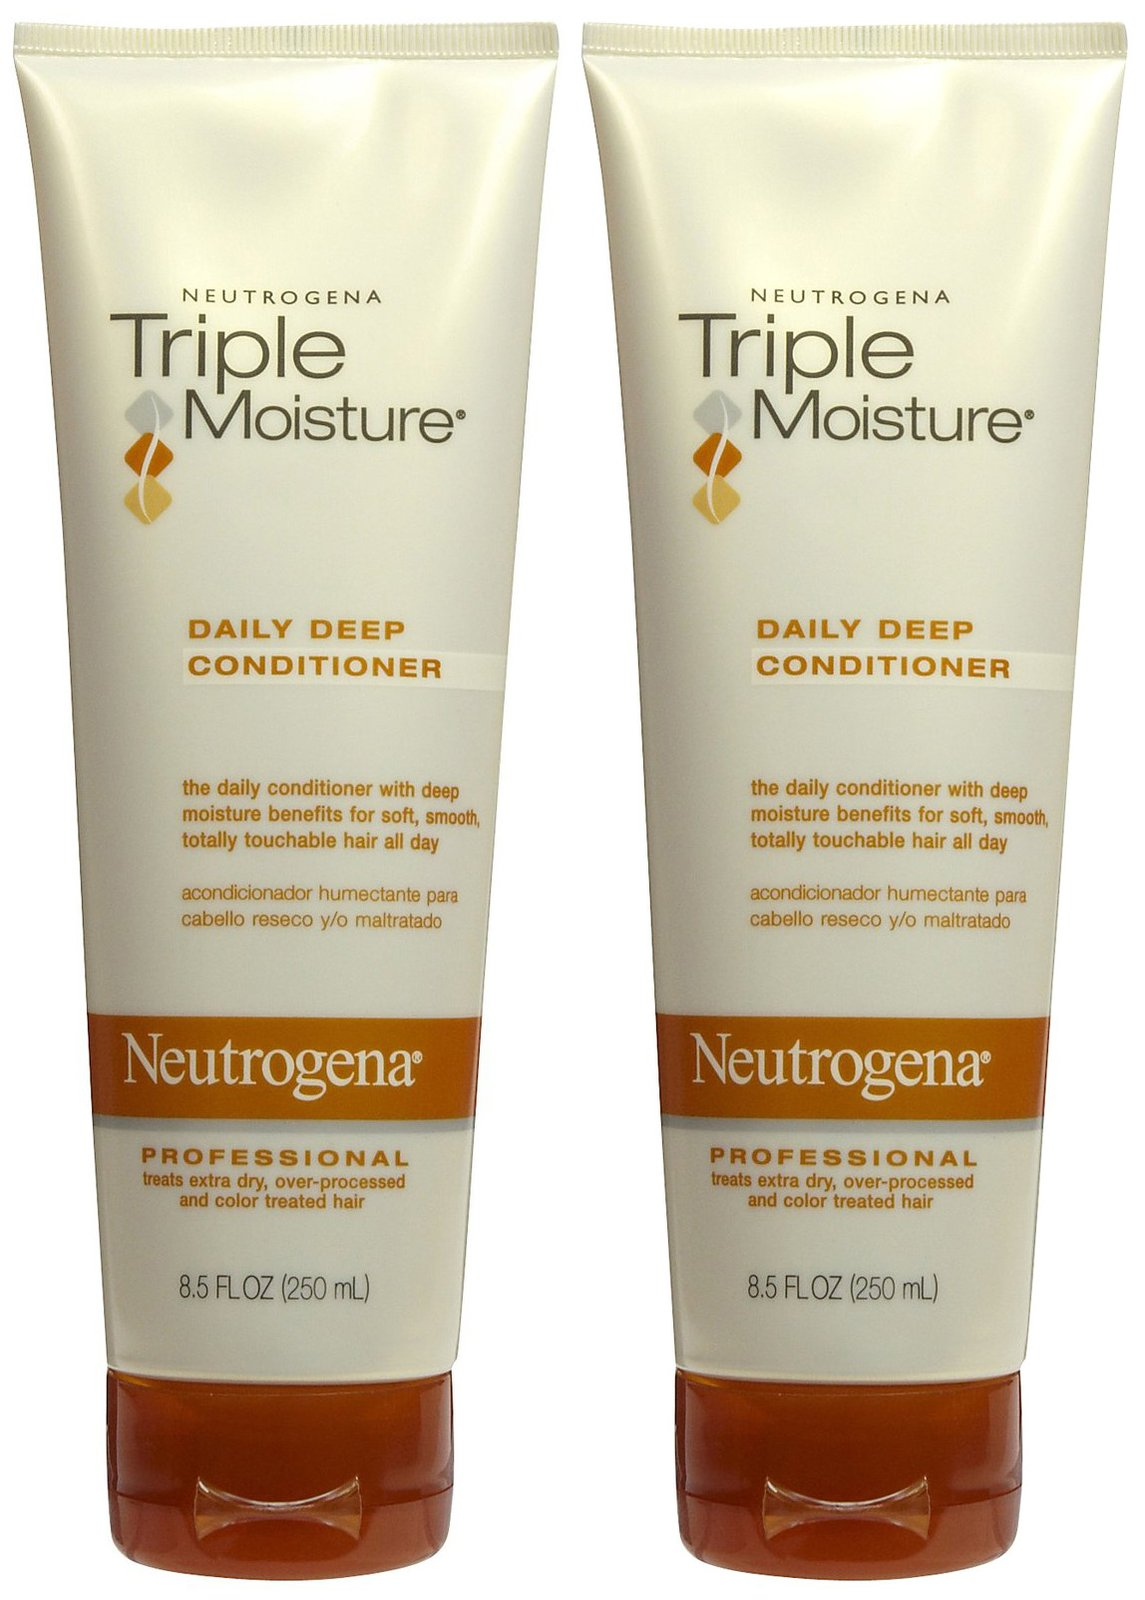 Triple Moisture Daily Deep Conditioner Image